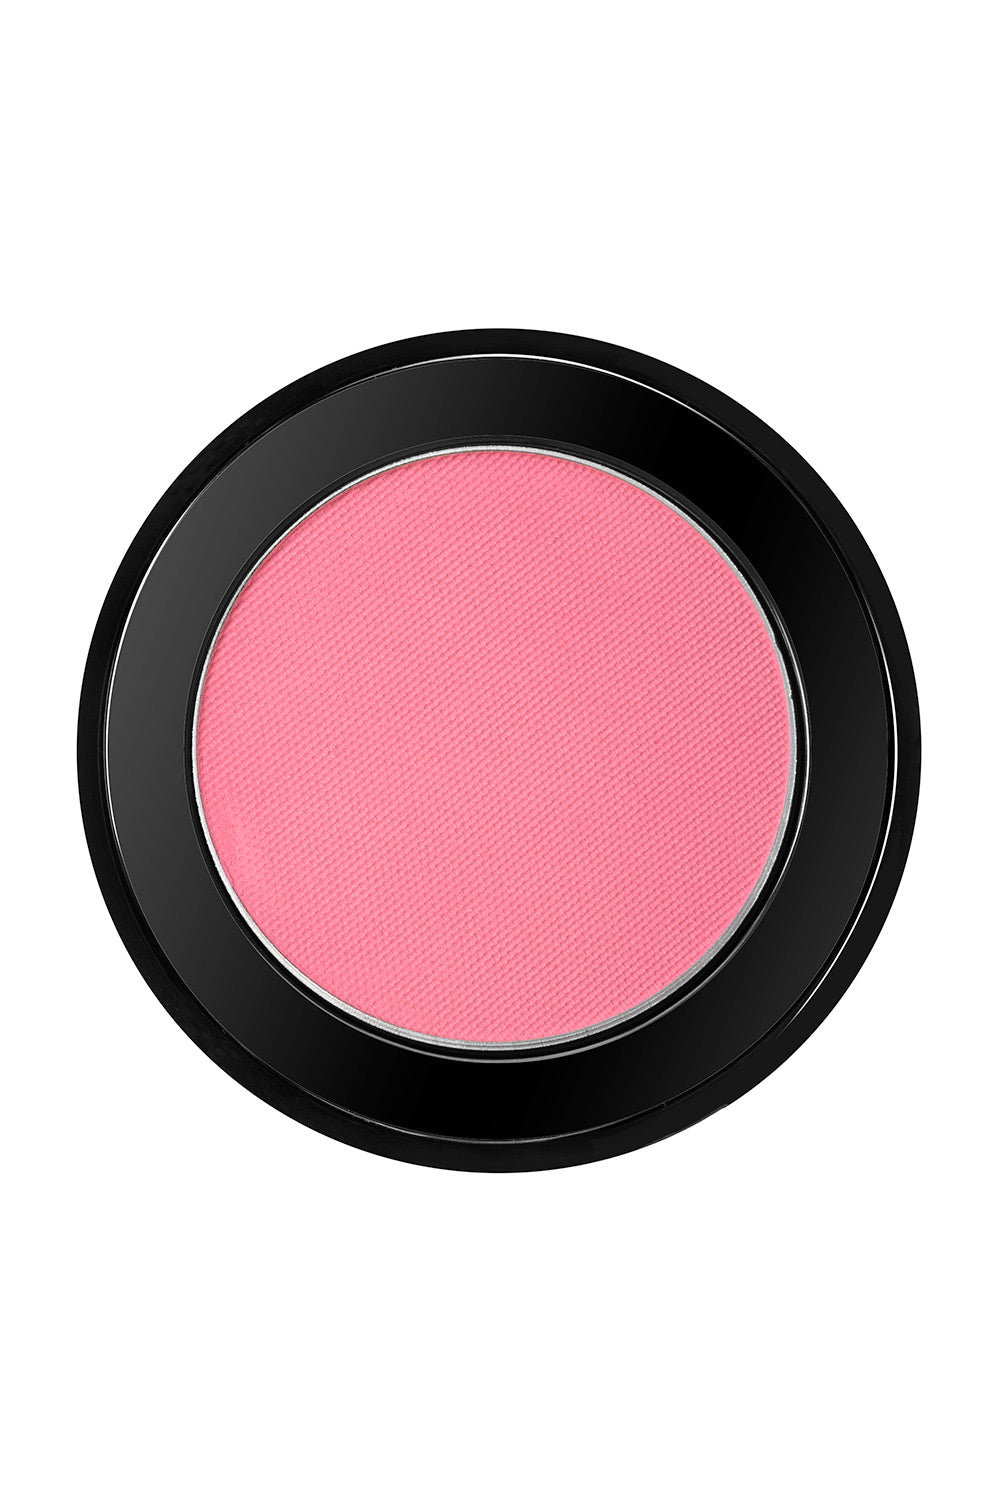 Type 1 Blush - I Pink I Love You